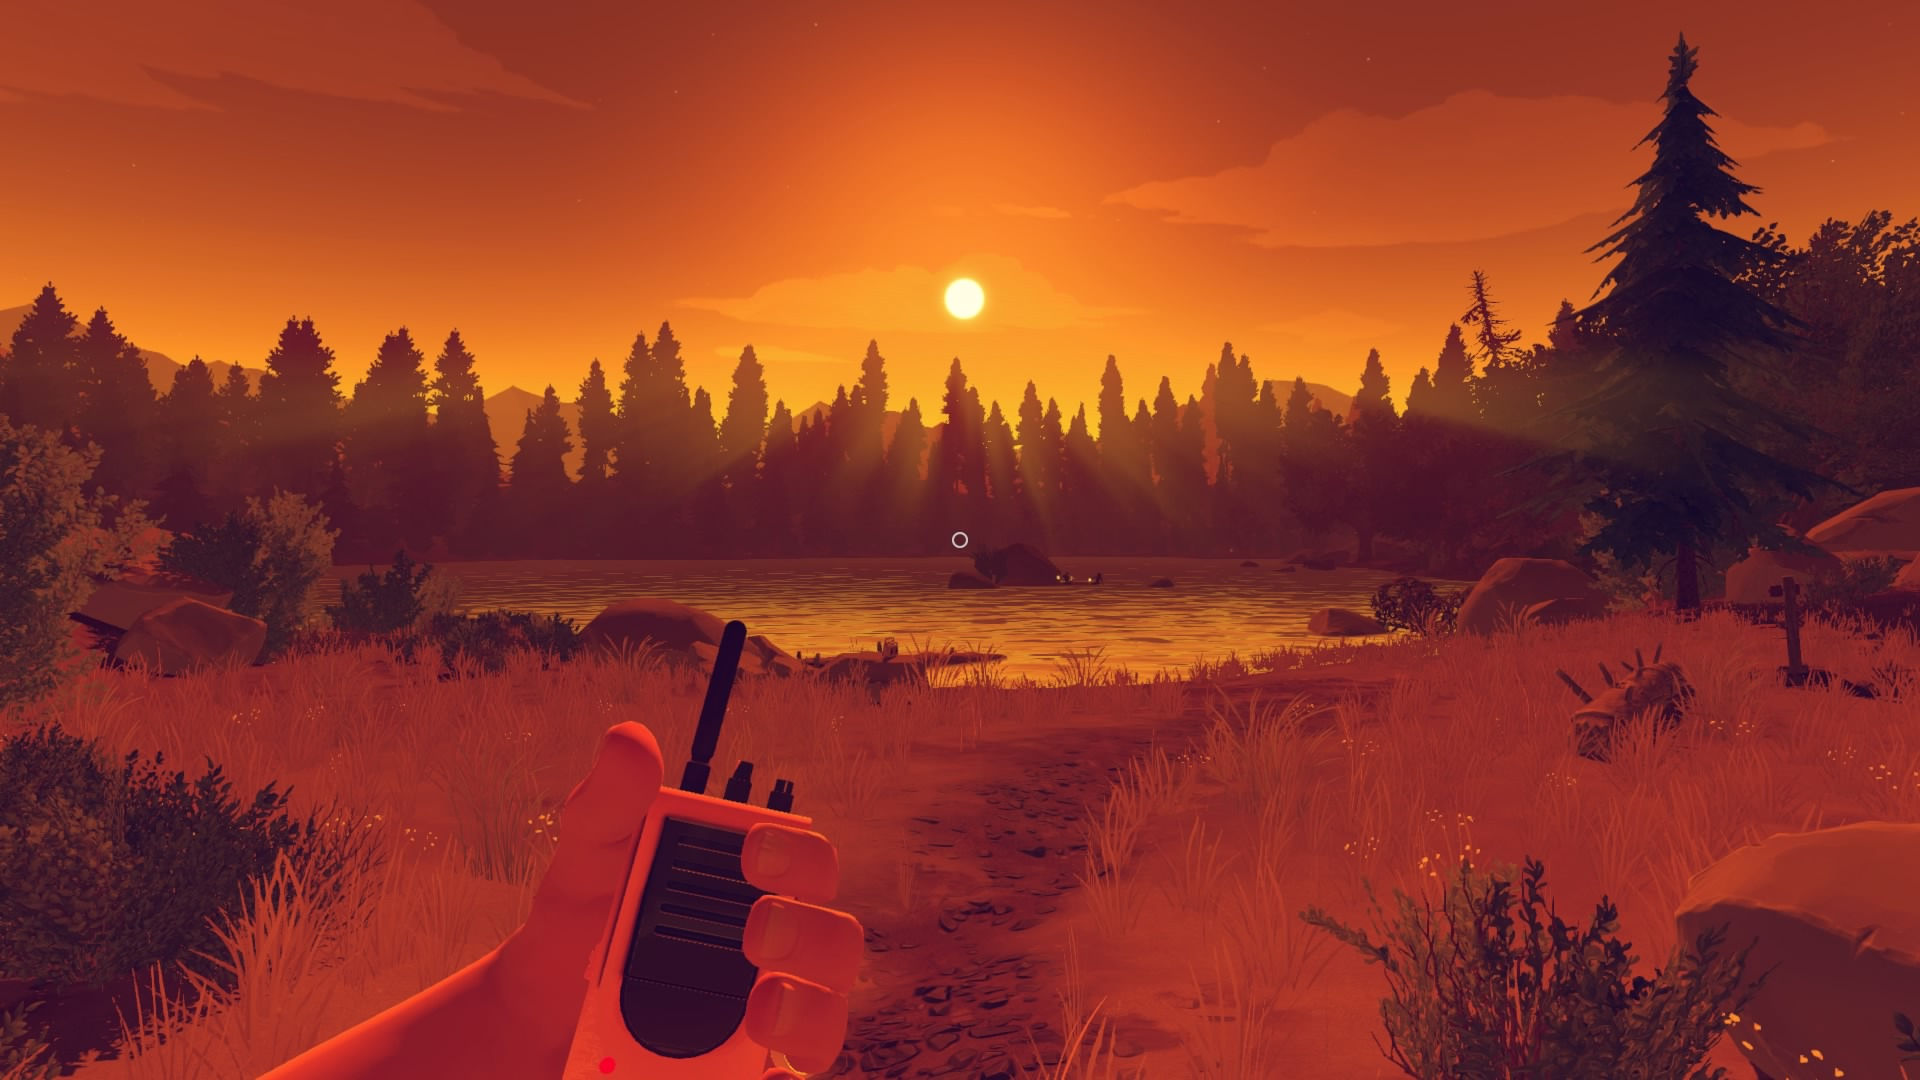 Red Dead Redemption Wallpaper Hd Firewatch Review Kindling Emotion The Koalition